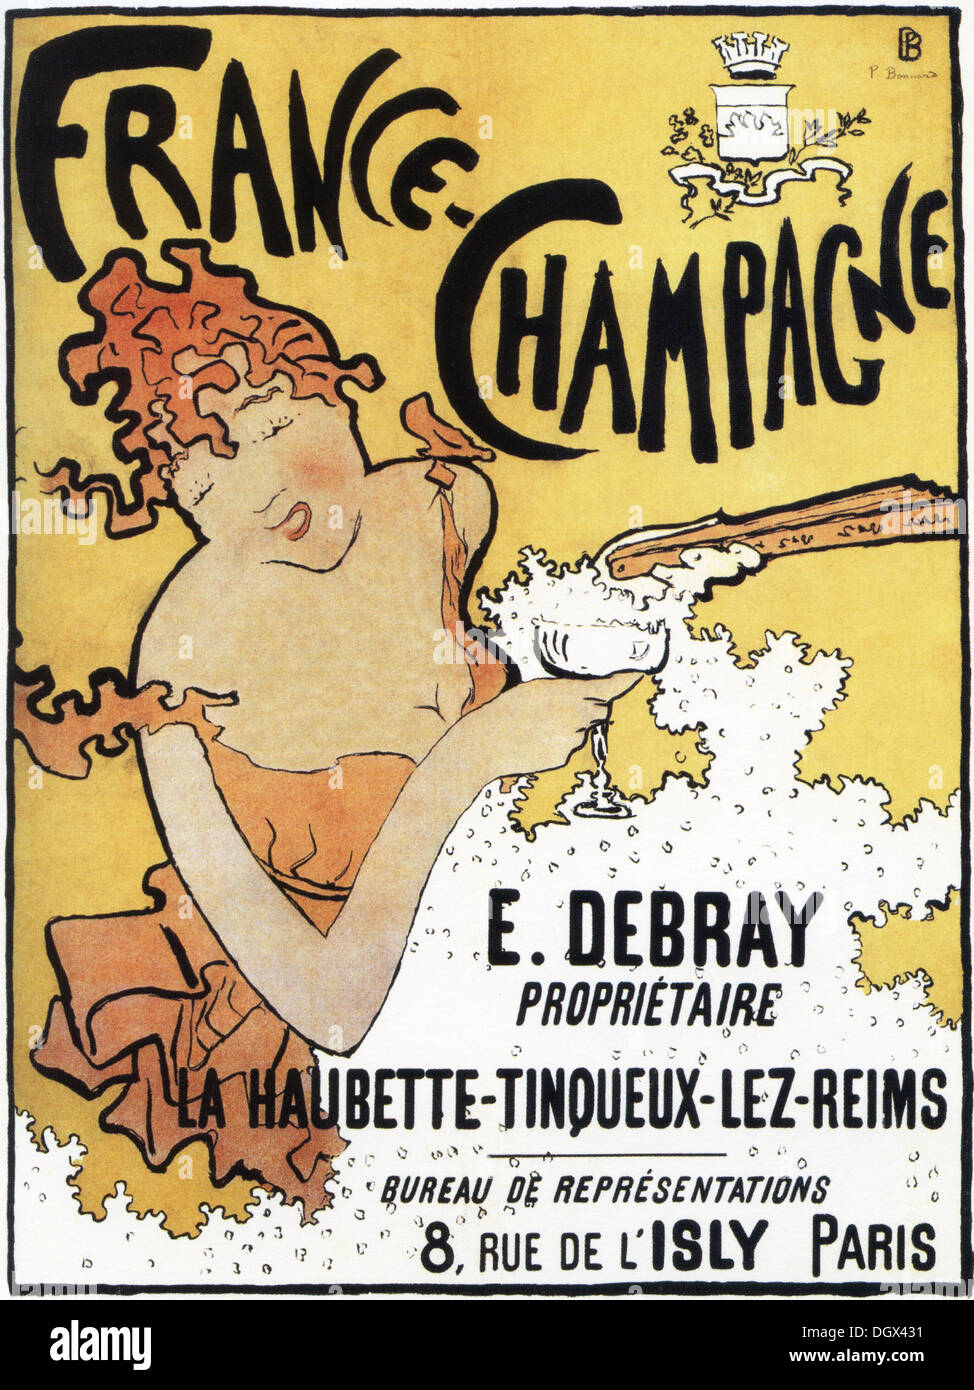 Pierre Bonnard France-Champagne - a vintage poster, 1891 - Editorial use only. - Stock Image